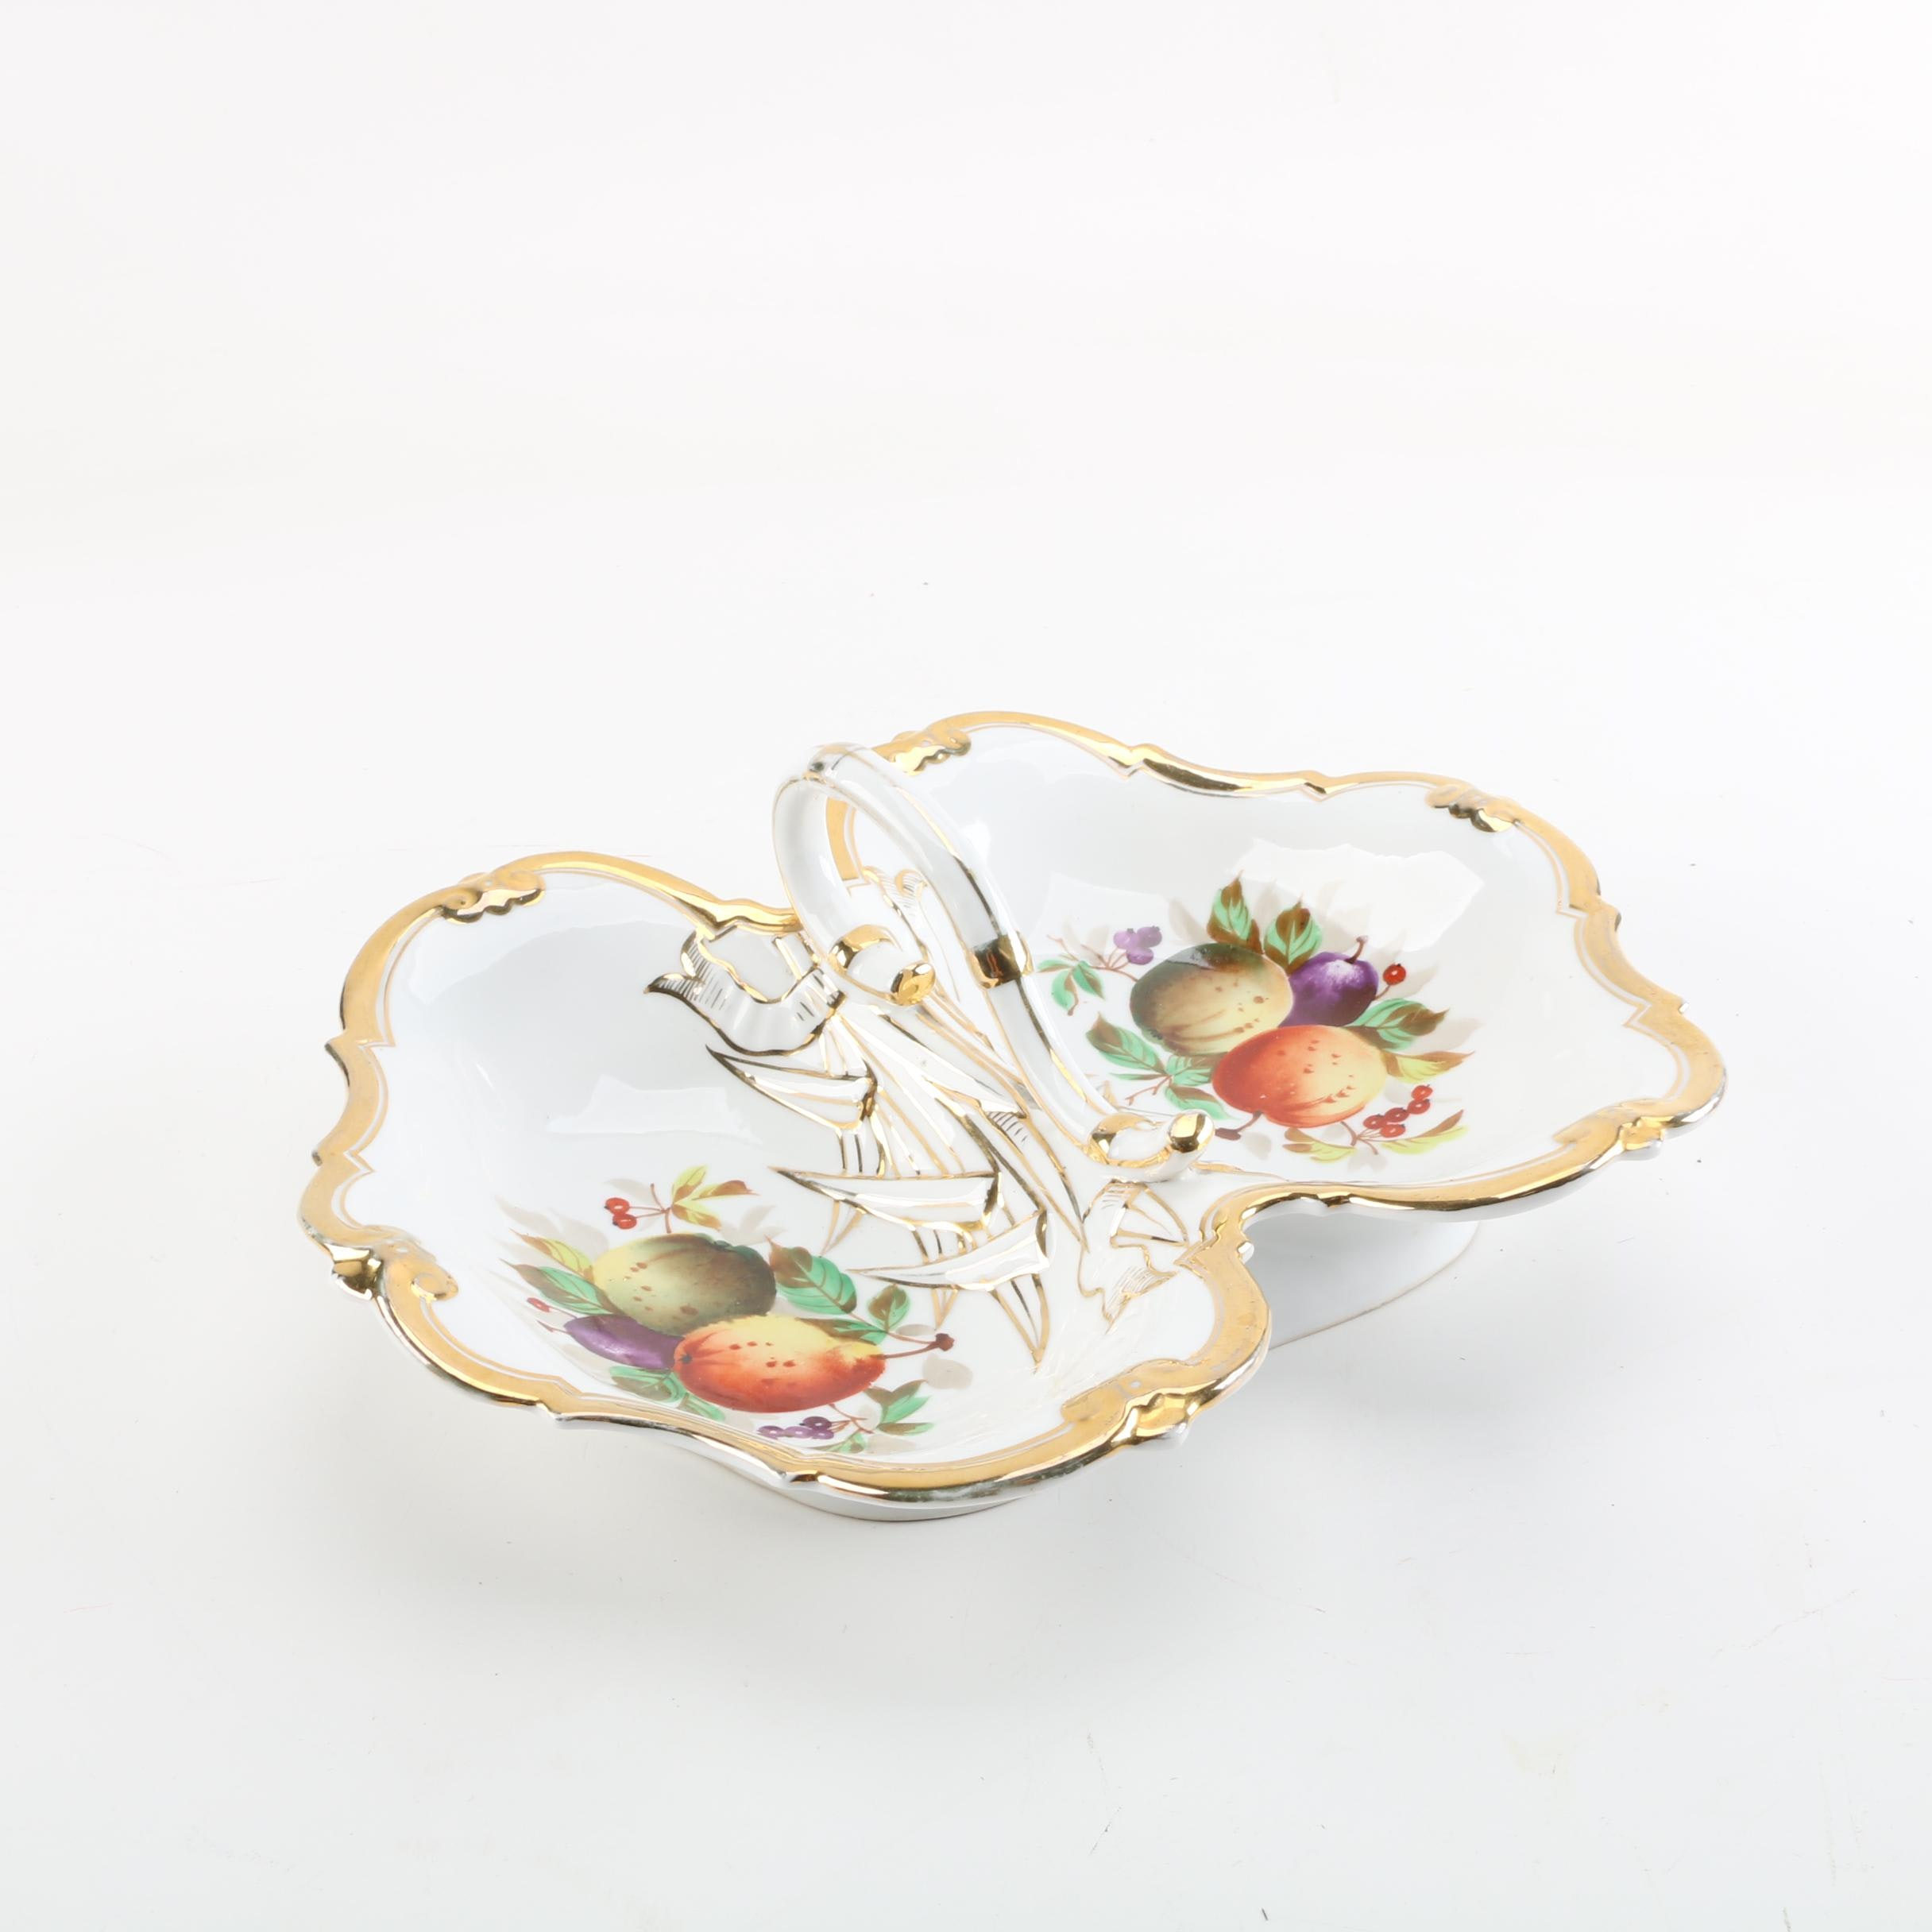 Carl Tielsch Fruit Themed Divided Porcelain Dish